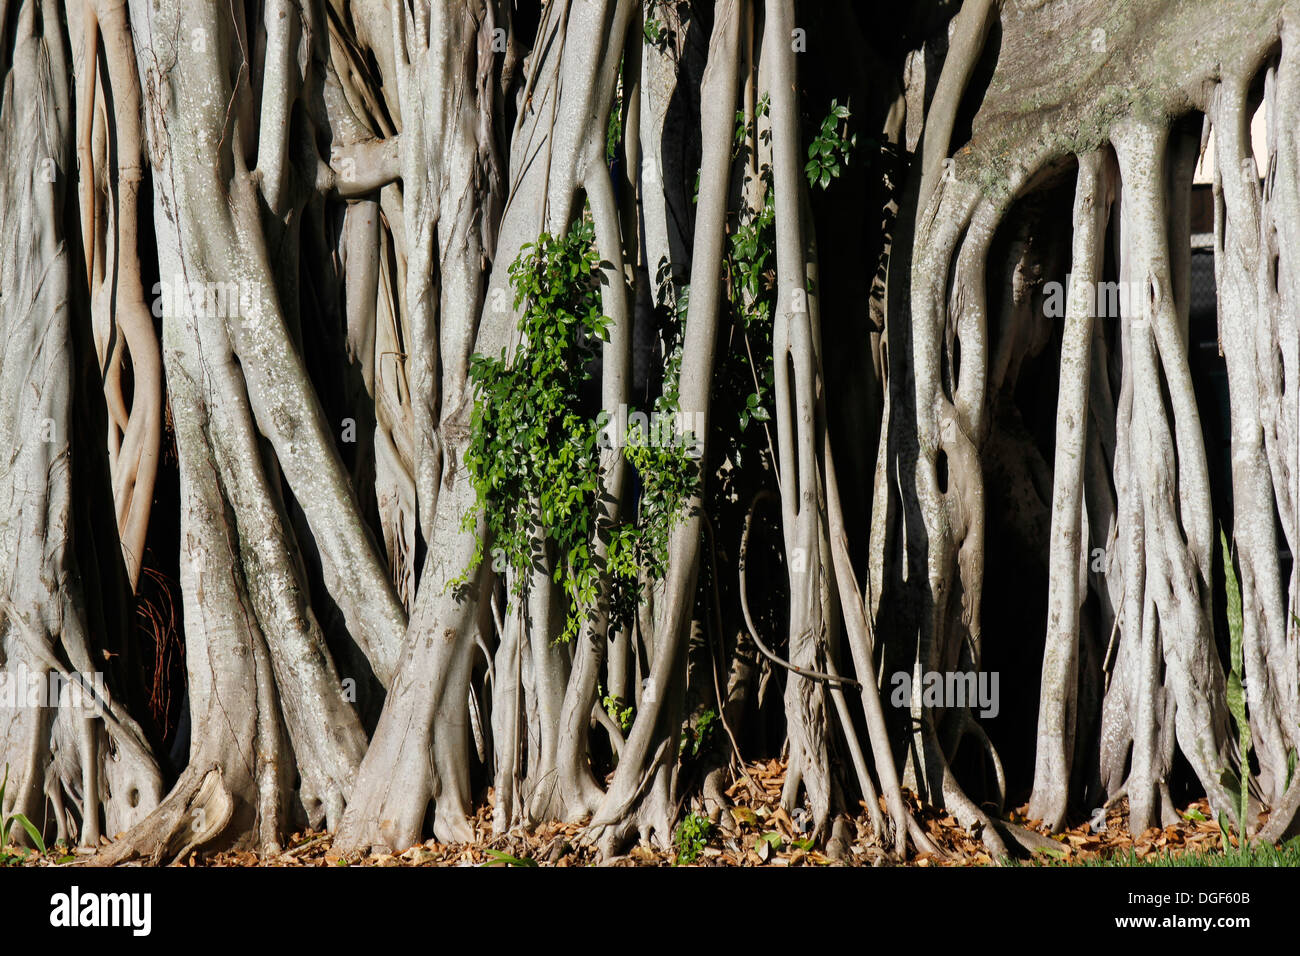 Close-up of the auxiliary roots of a banyan tree (Ficus, fig tree) - Stock Image